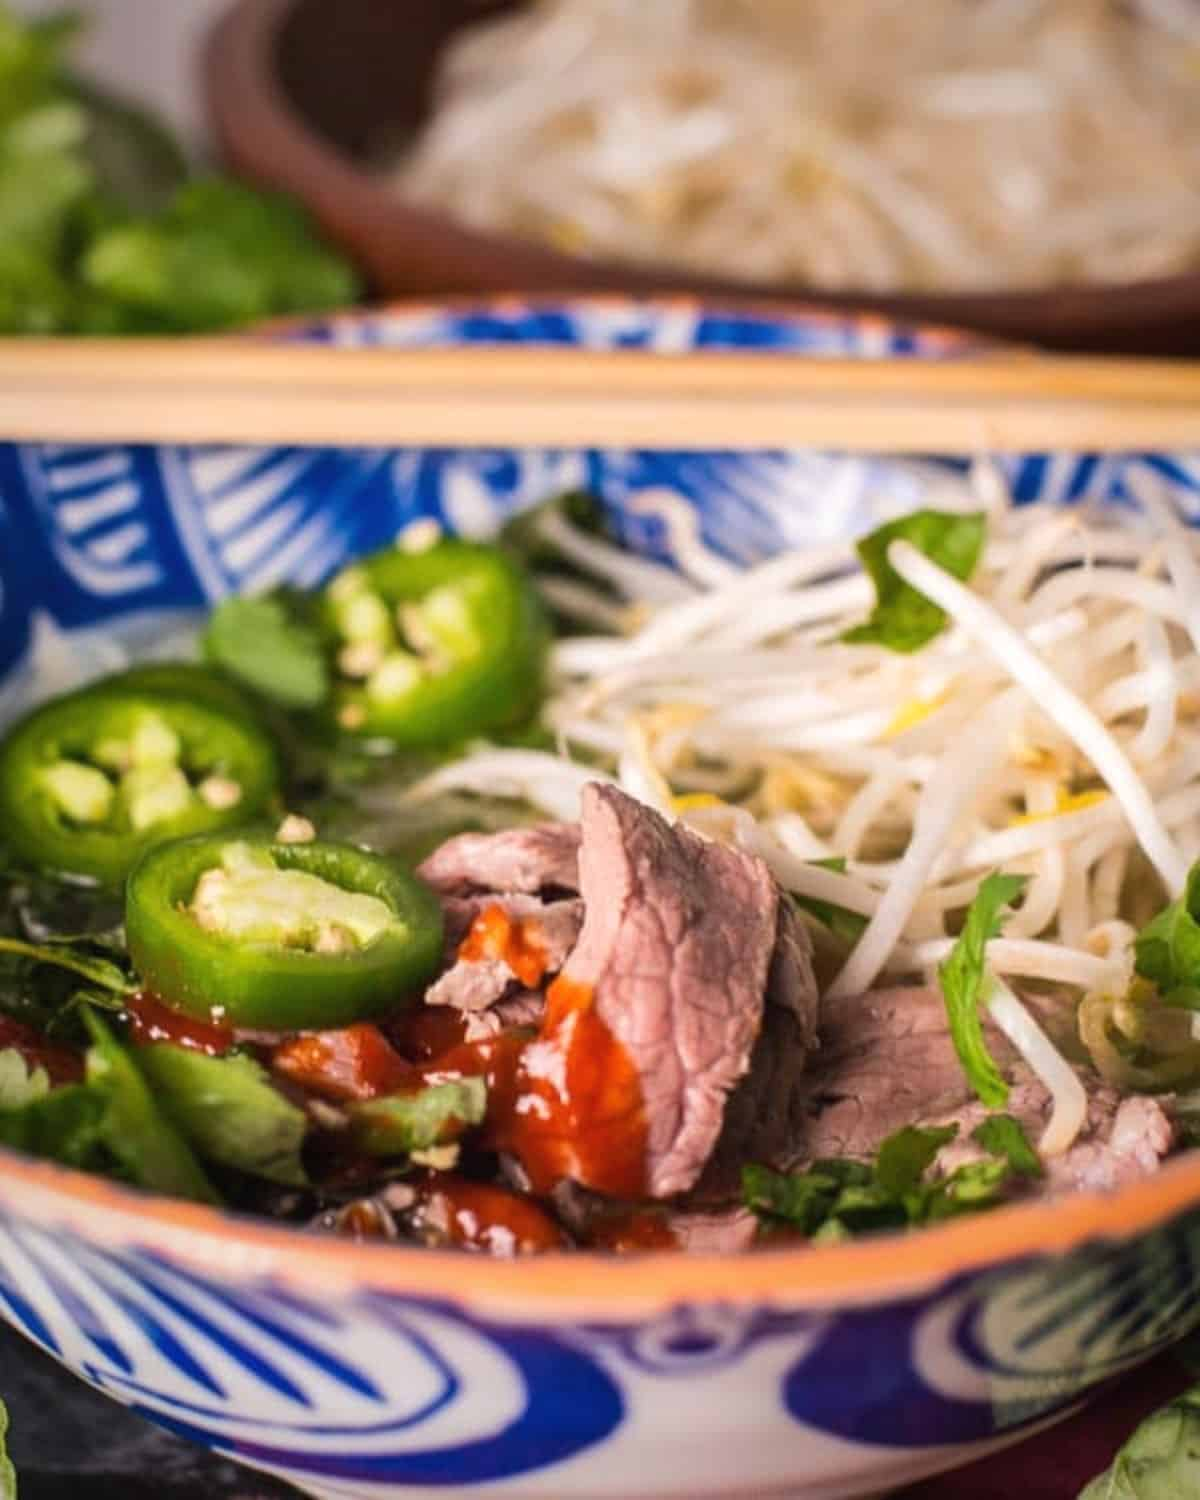 authentic pho tai recipe made from scratch